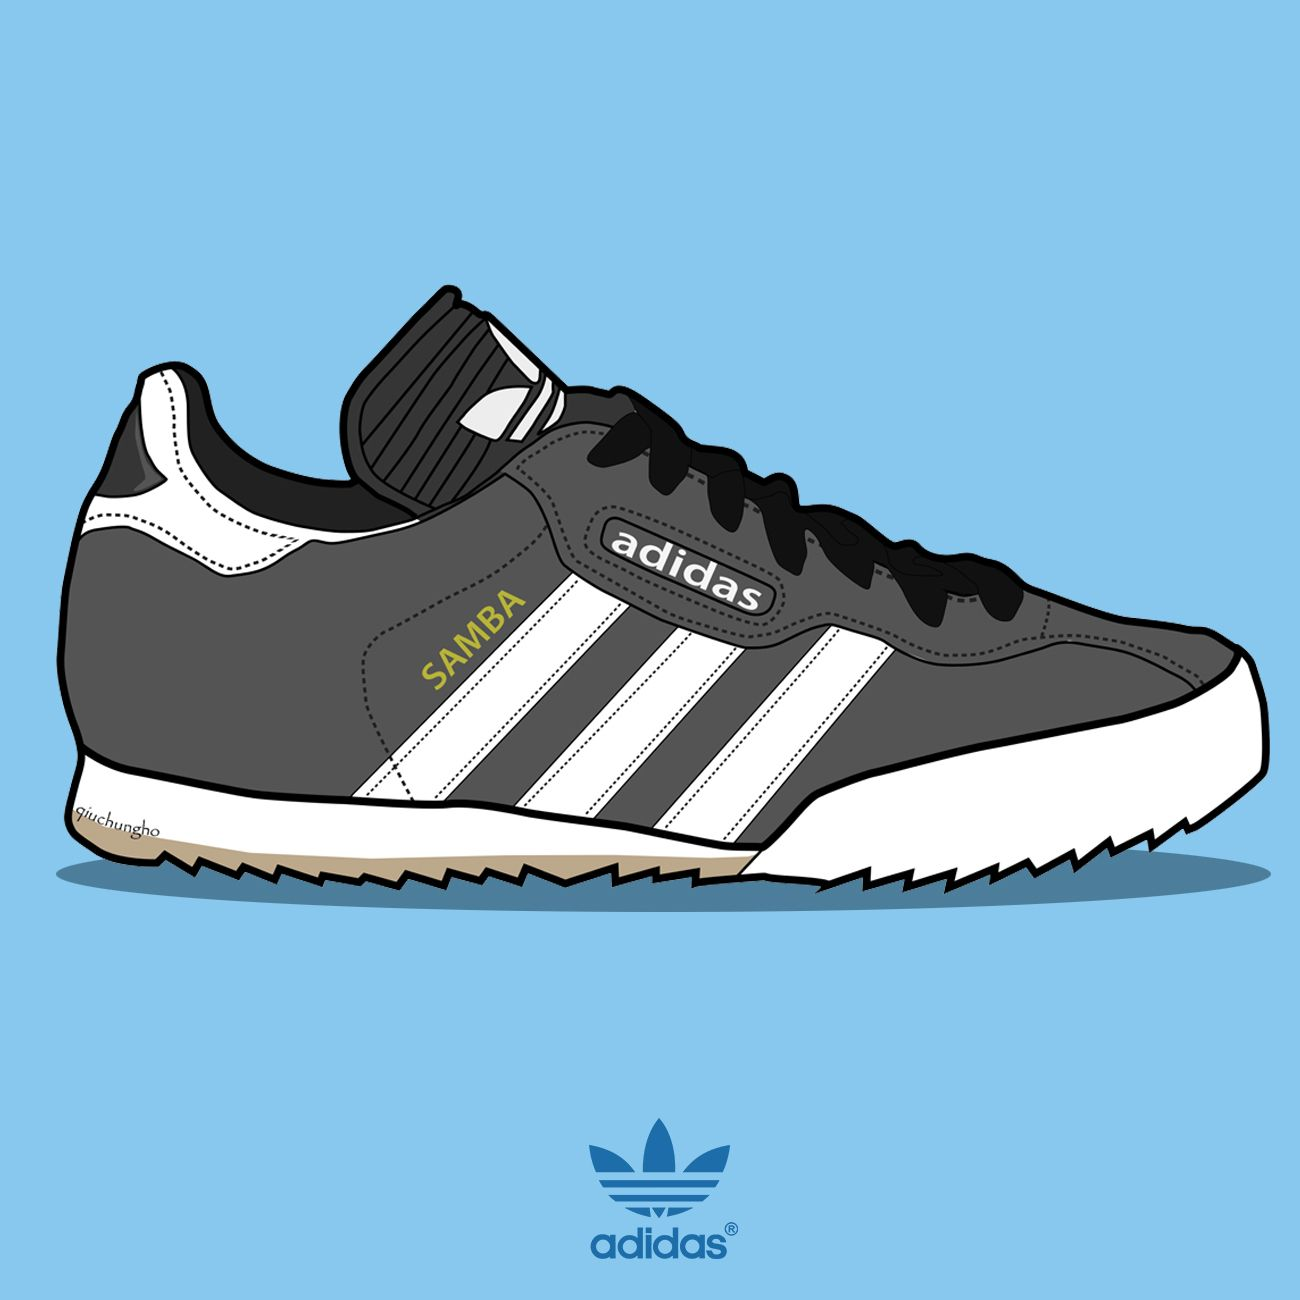 Adidas Originals Super Samba. Illustration by : @qiuchungho Find me on  Instagram.